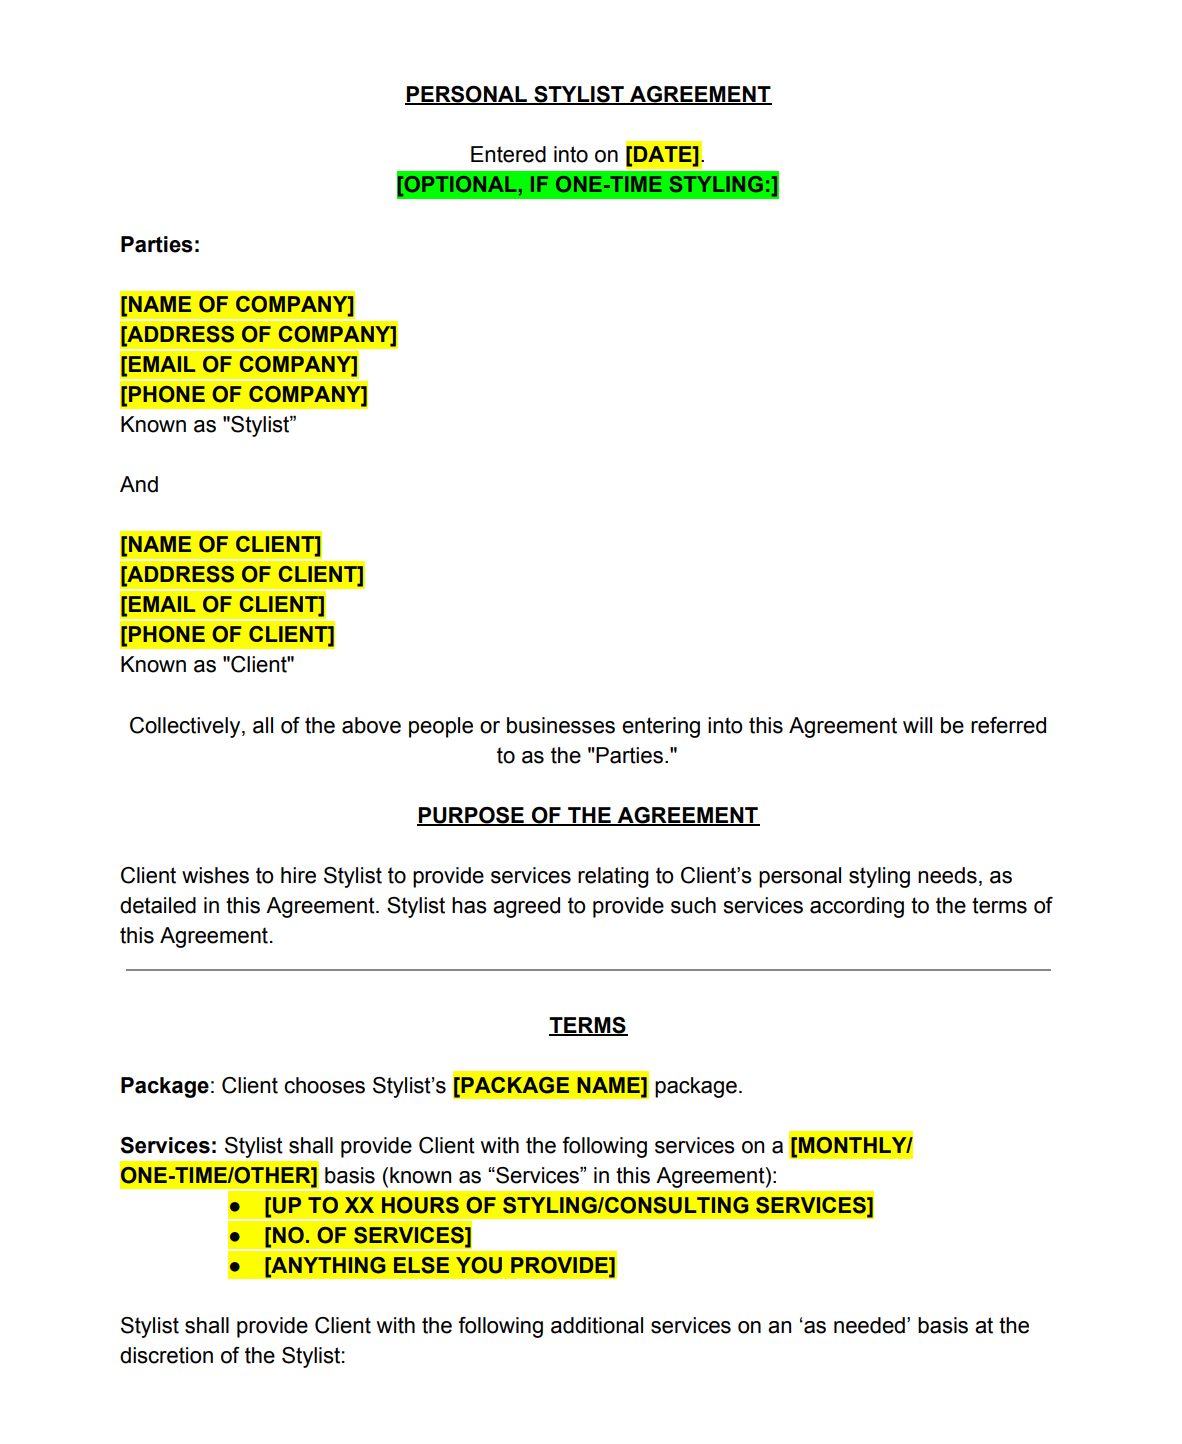 Personal Stylist Contract Template The Contract Shop